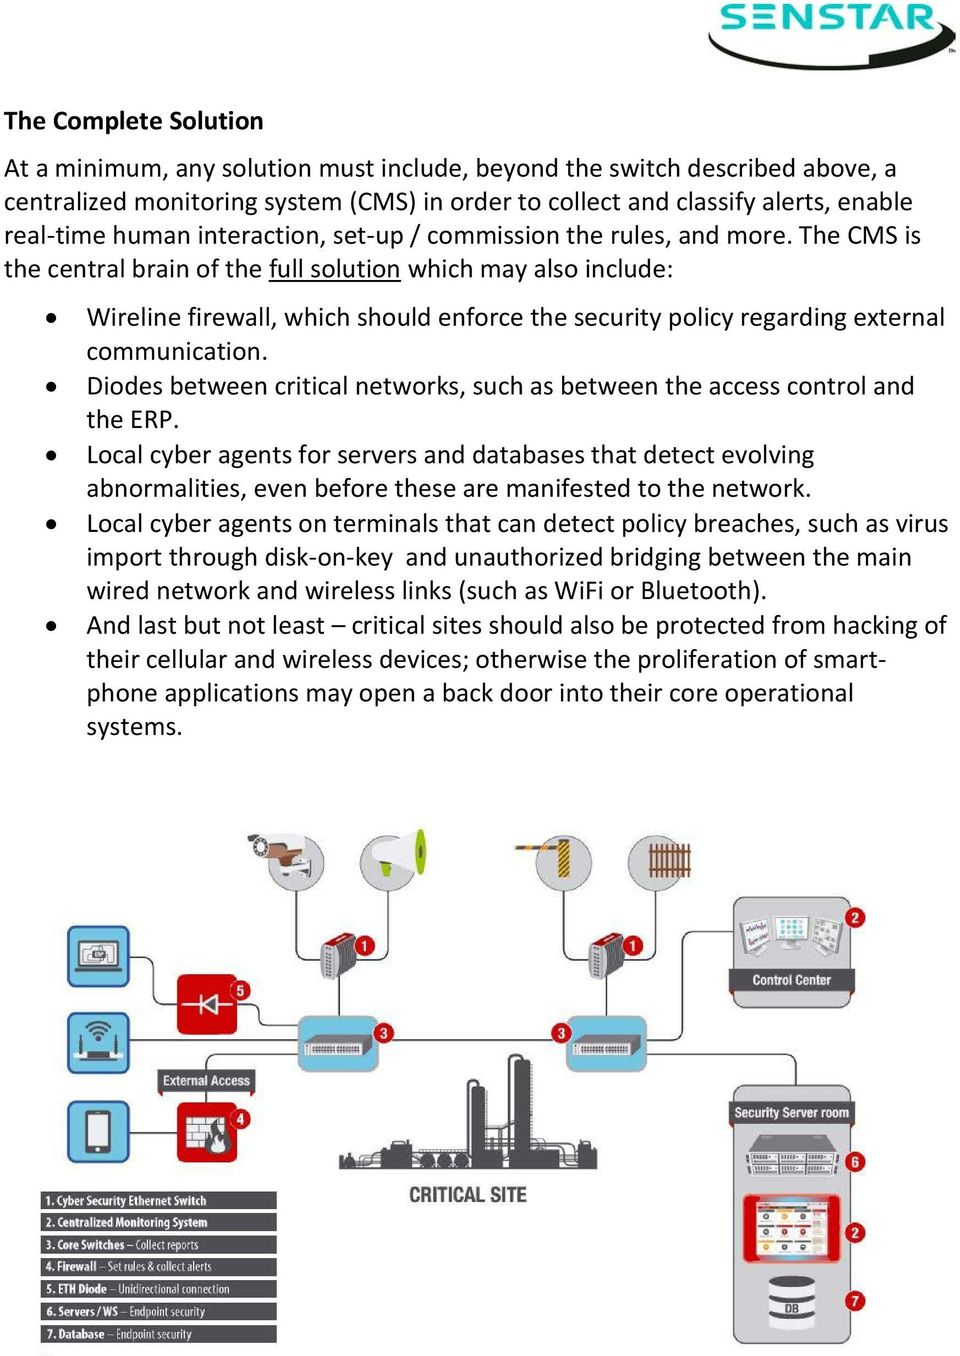 The CMS is the central brain of the full solution which may also include: Wireline firewall, which should enforce the security policy regarding external communication.